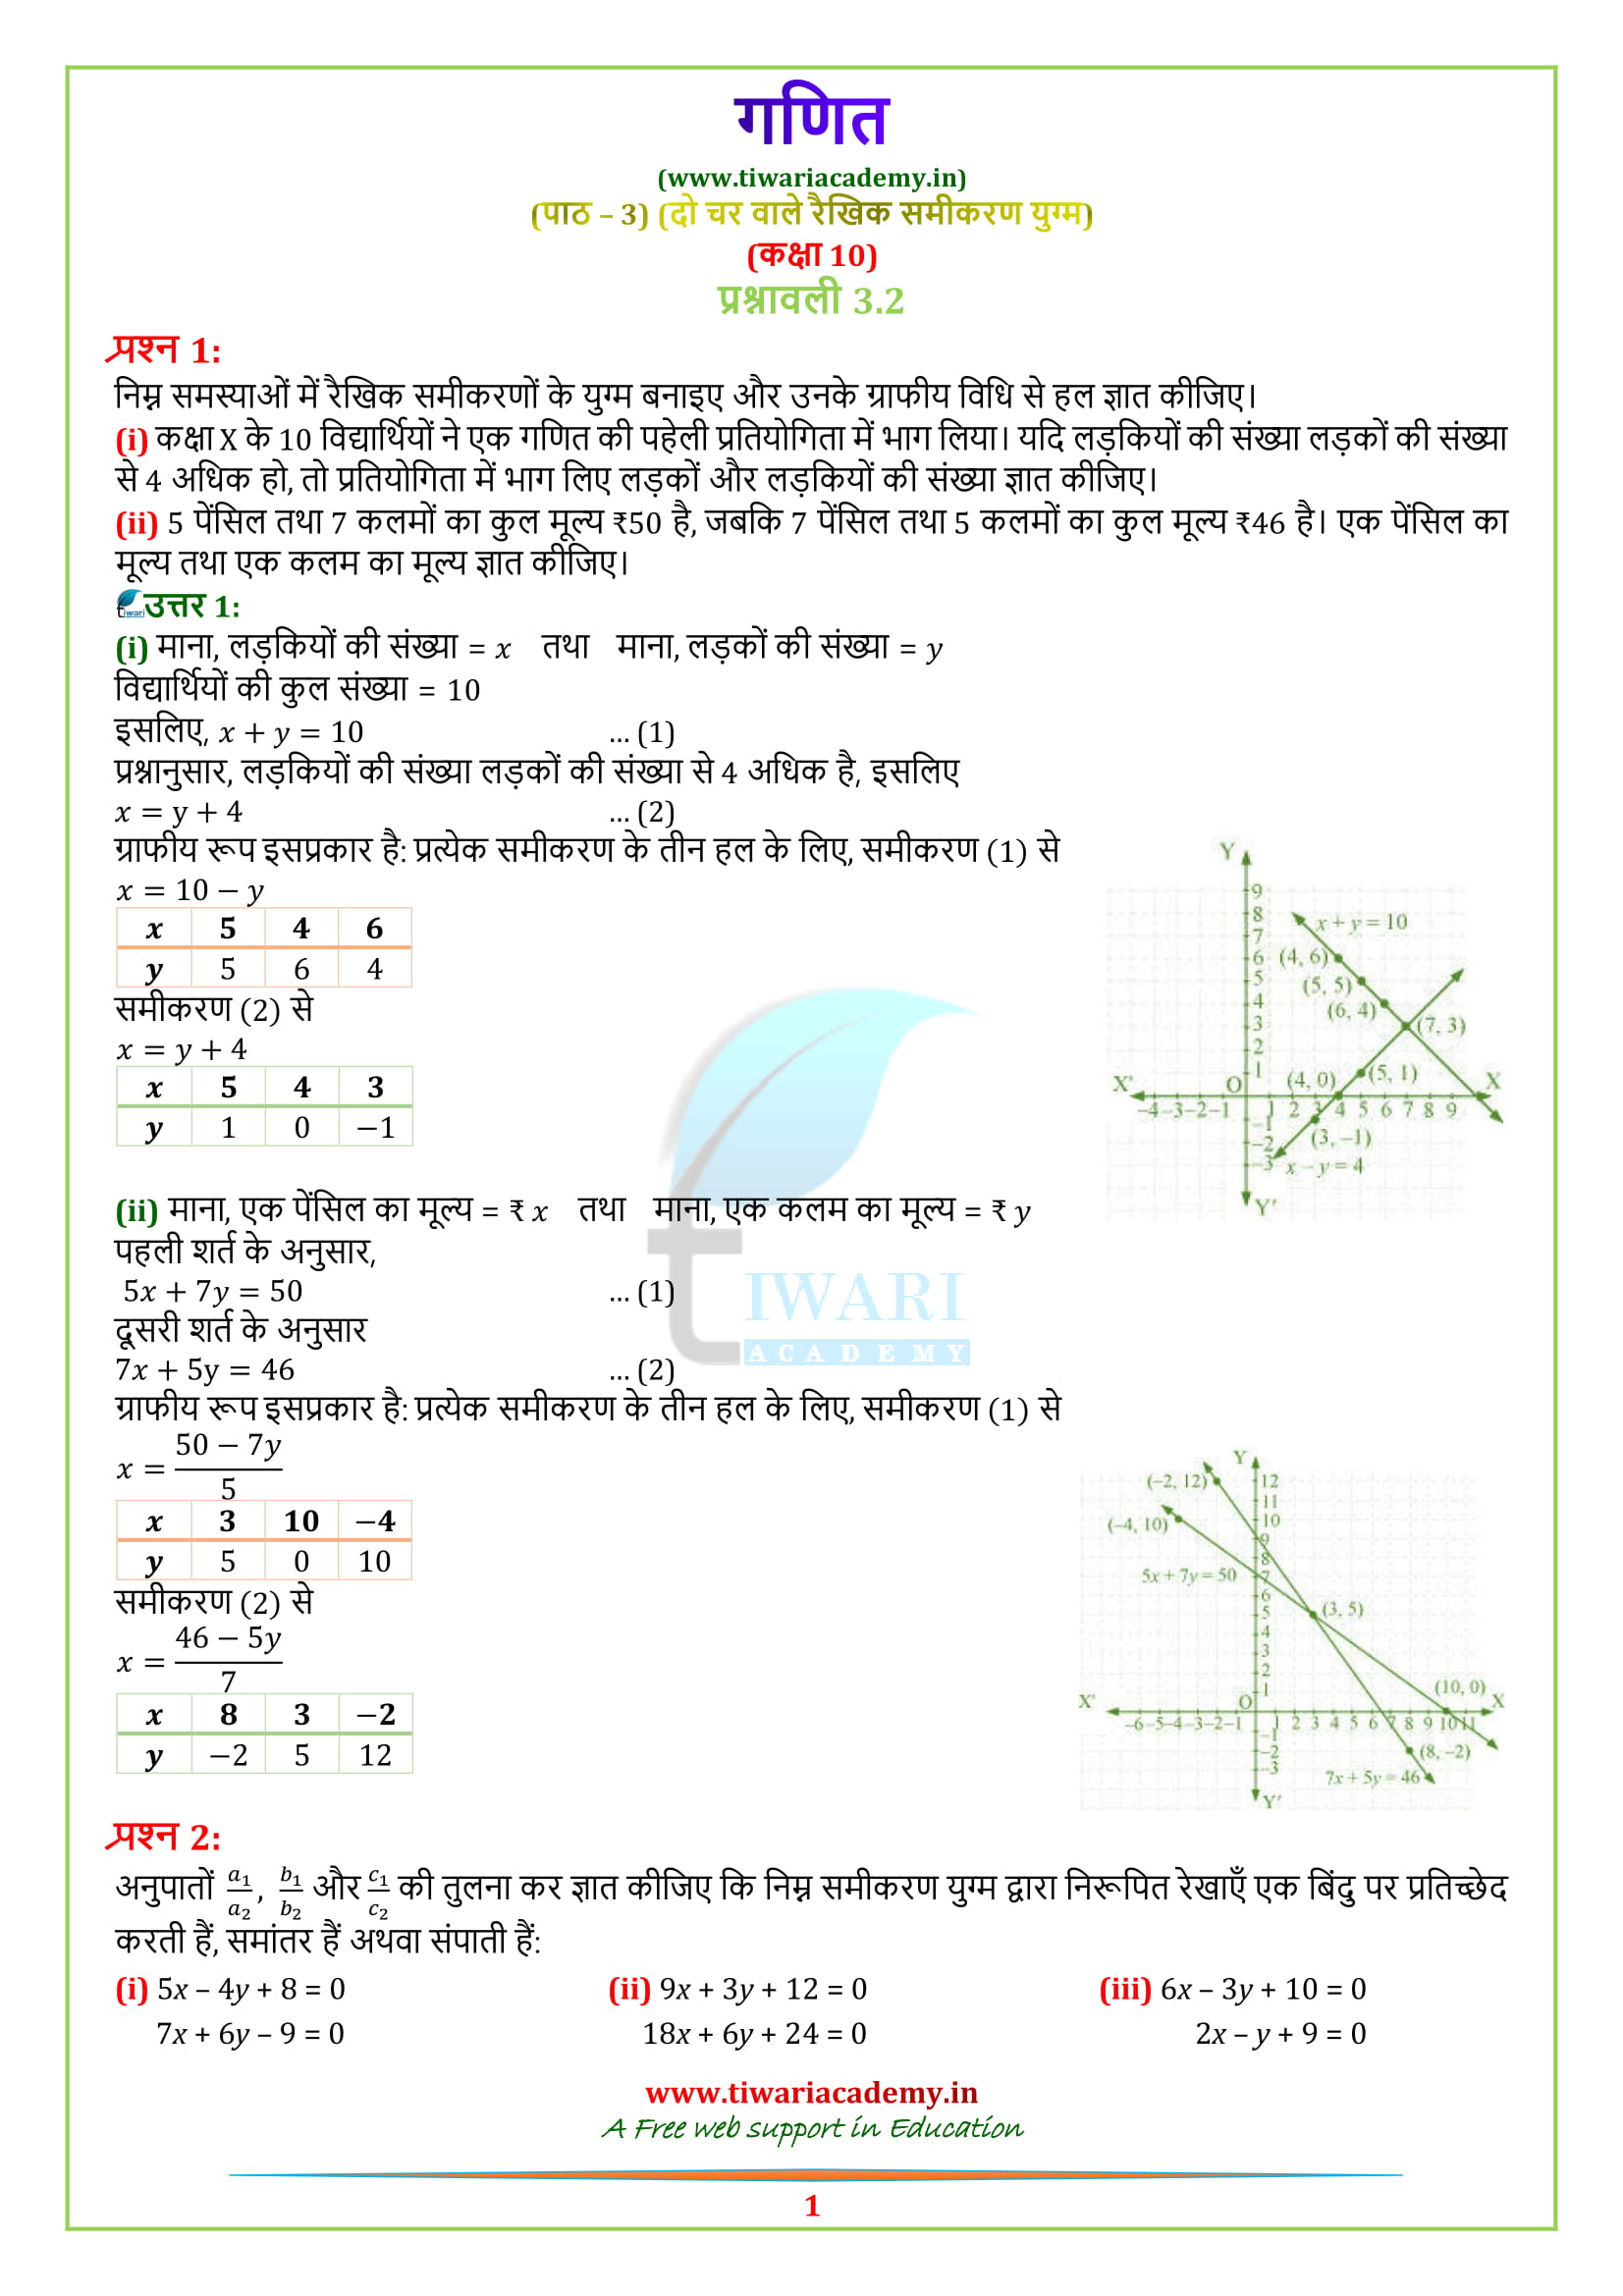 Class 10 Maths Chapter 3 Exercise 3.2 solutions in hindi medium